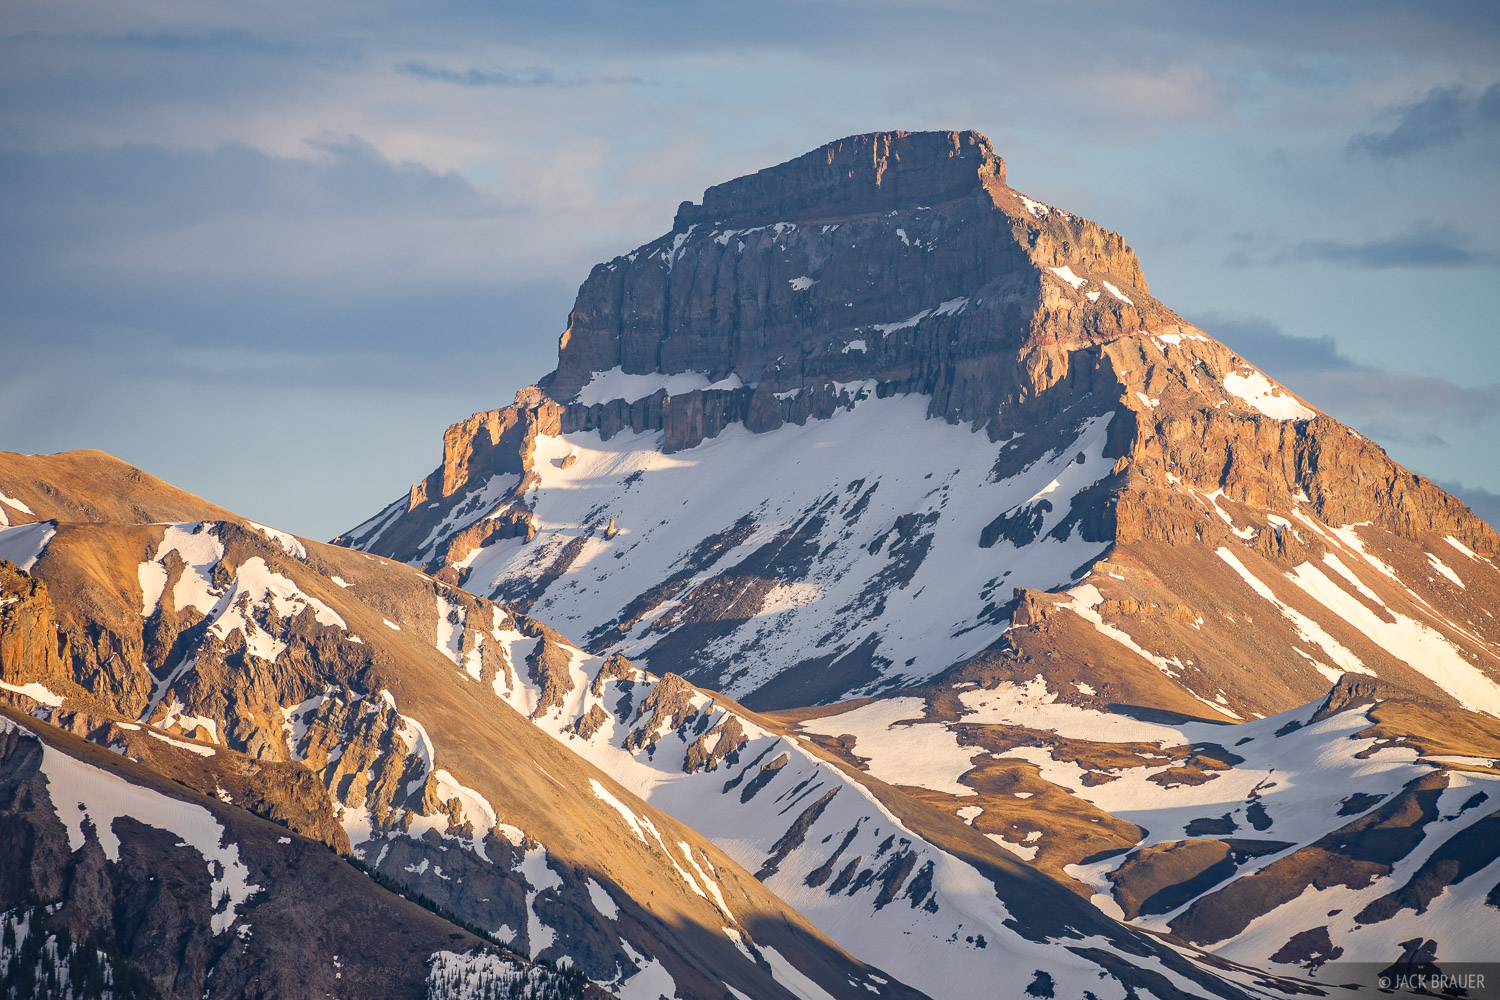 Cimarrons, Colorado, San Juan Mountains, Uncompahgre Peak, Uncompahgre Wilderness, photo